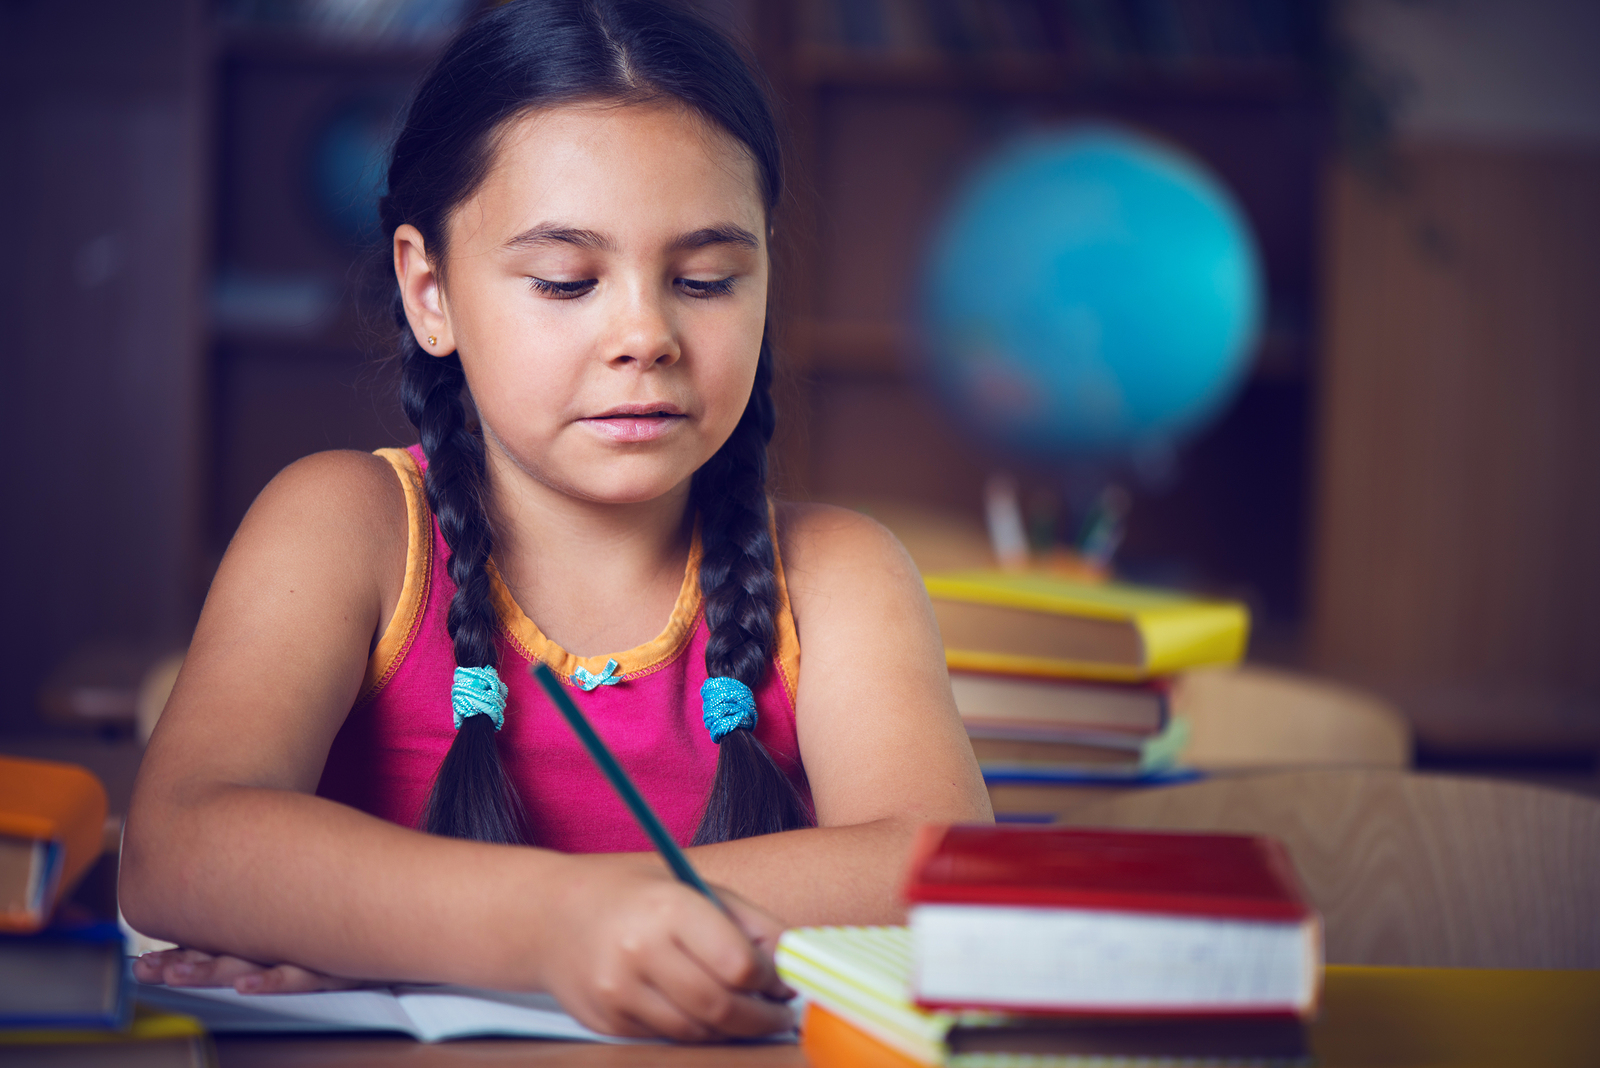 the creative writing this girl Short story topics and creative writing ideas you can use in your own creative writing use them alone, or with the cwn free online writing courses on how to write a story.